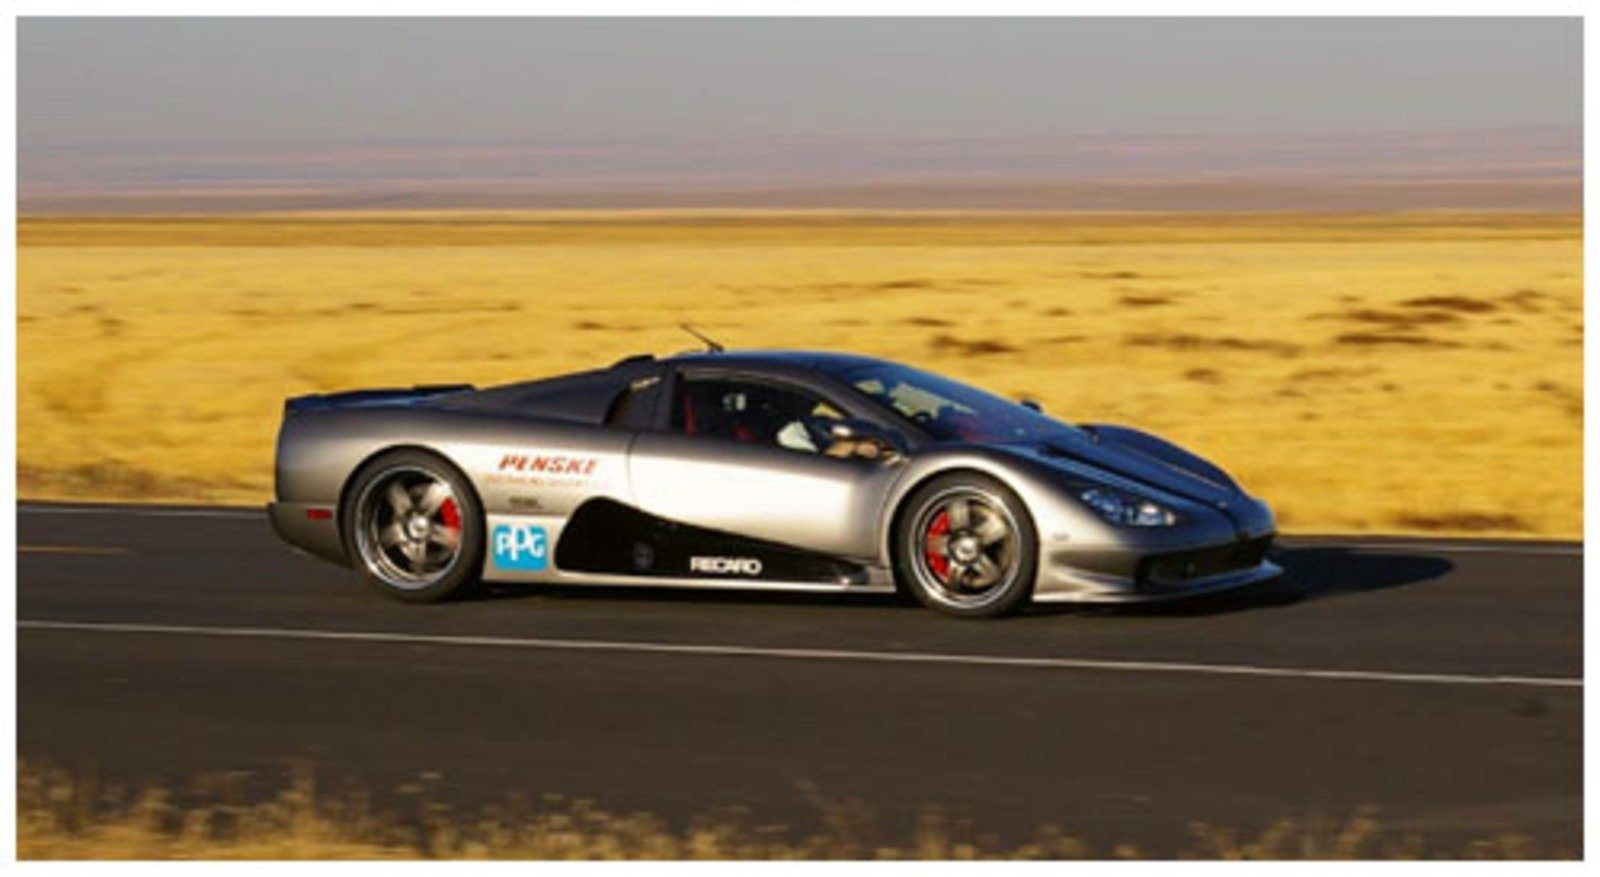 ssc ultimate aero twin turbo at 255 mph news gallery top speed. Black Bedroom Furniture Sets. Home Design Ideas